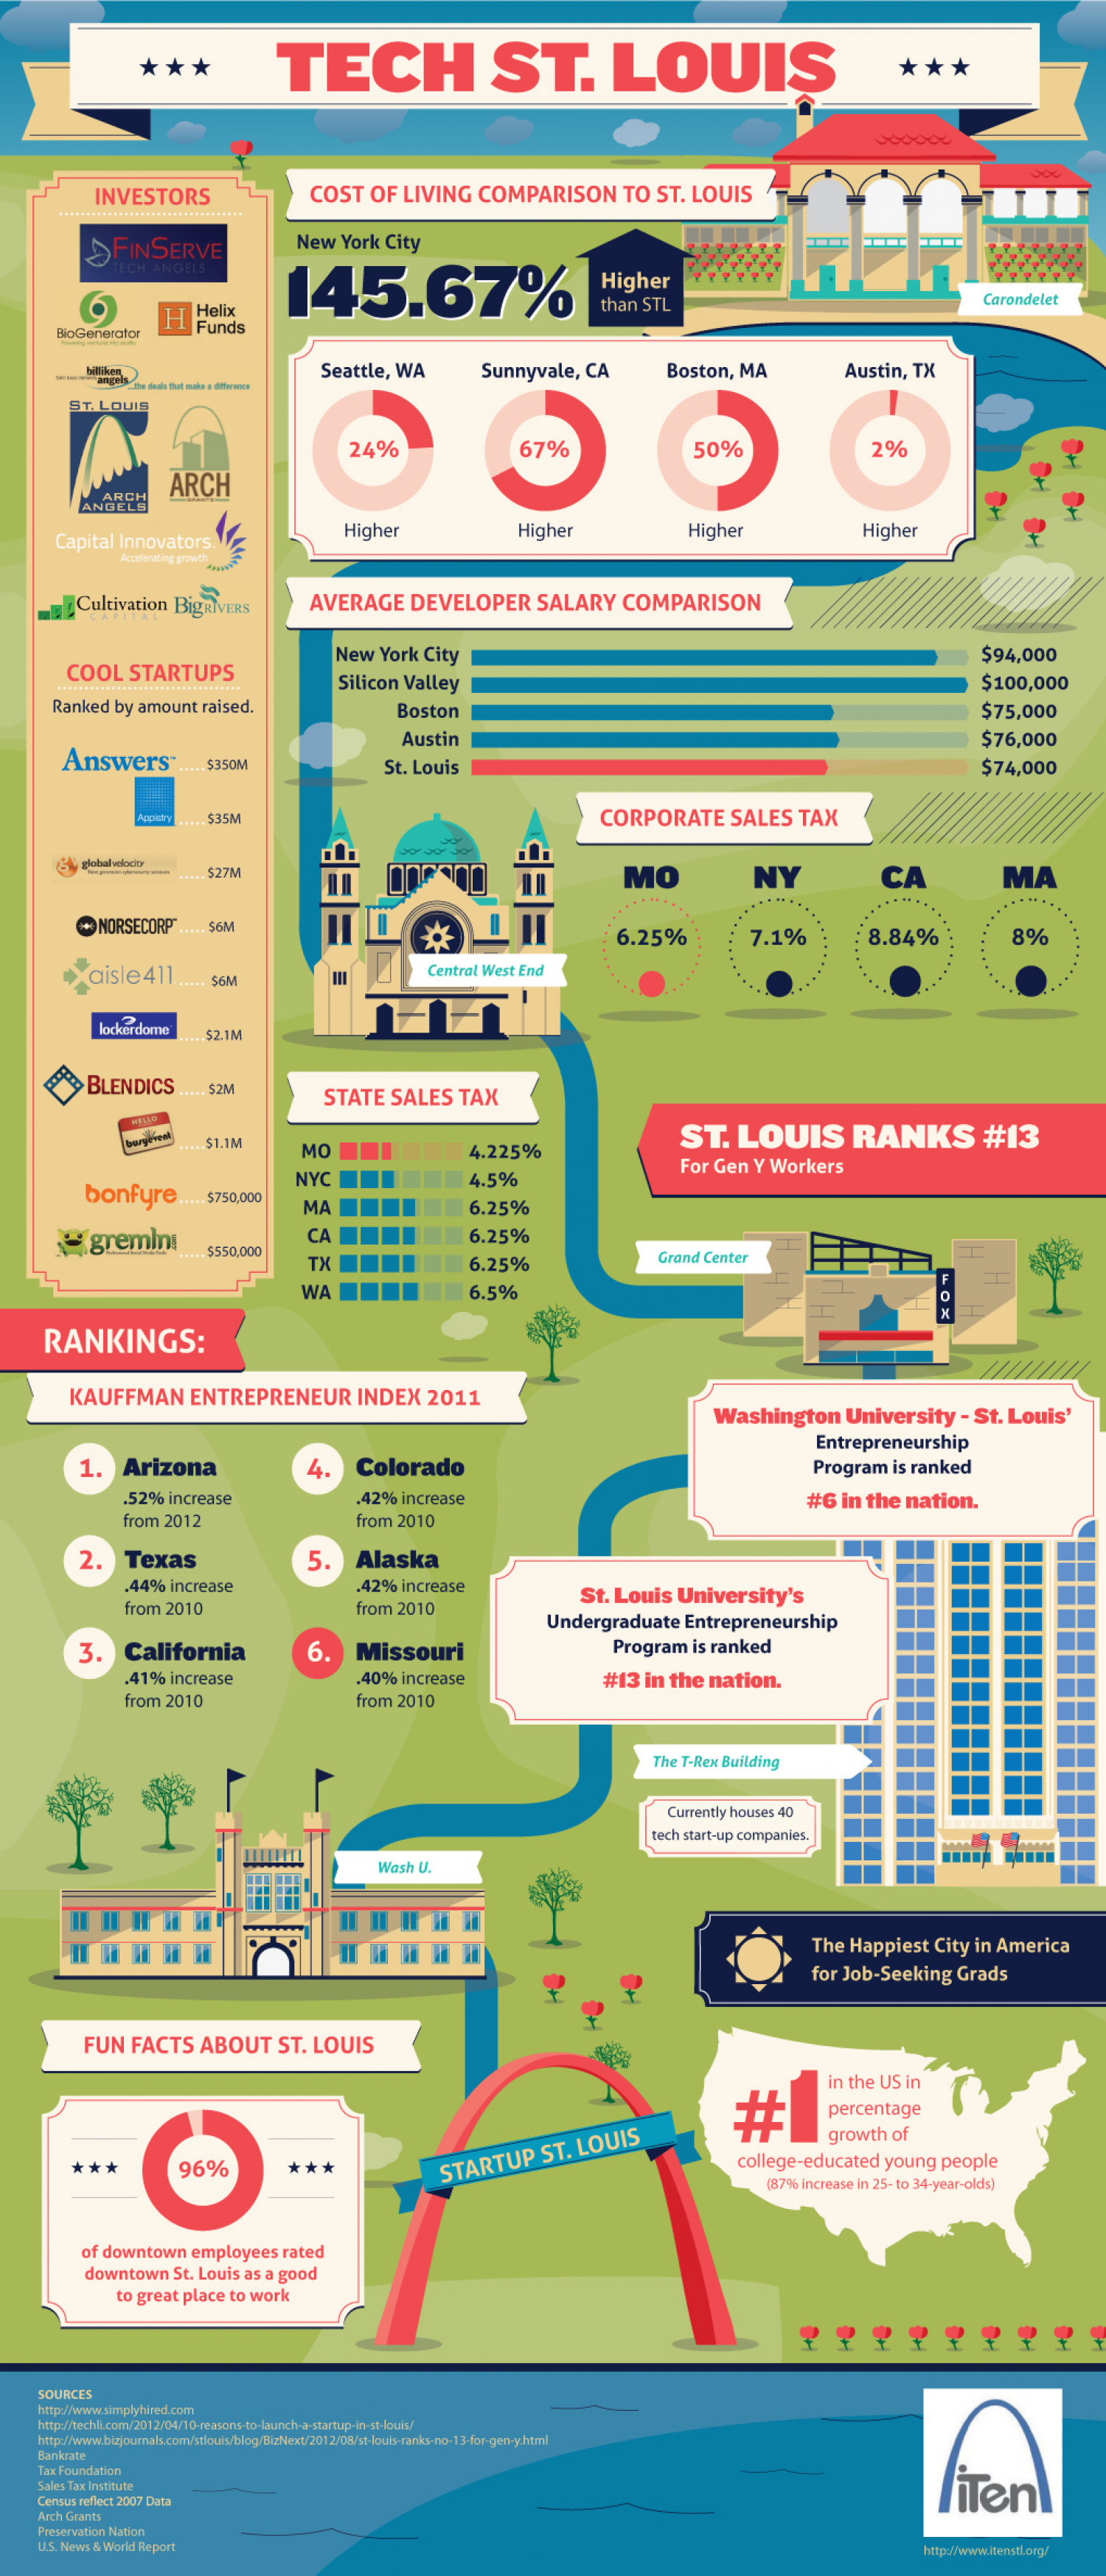 Tech St. Louis Infographic